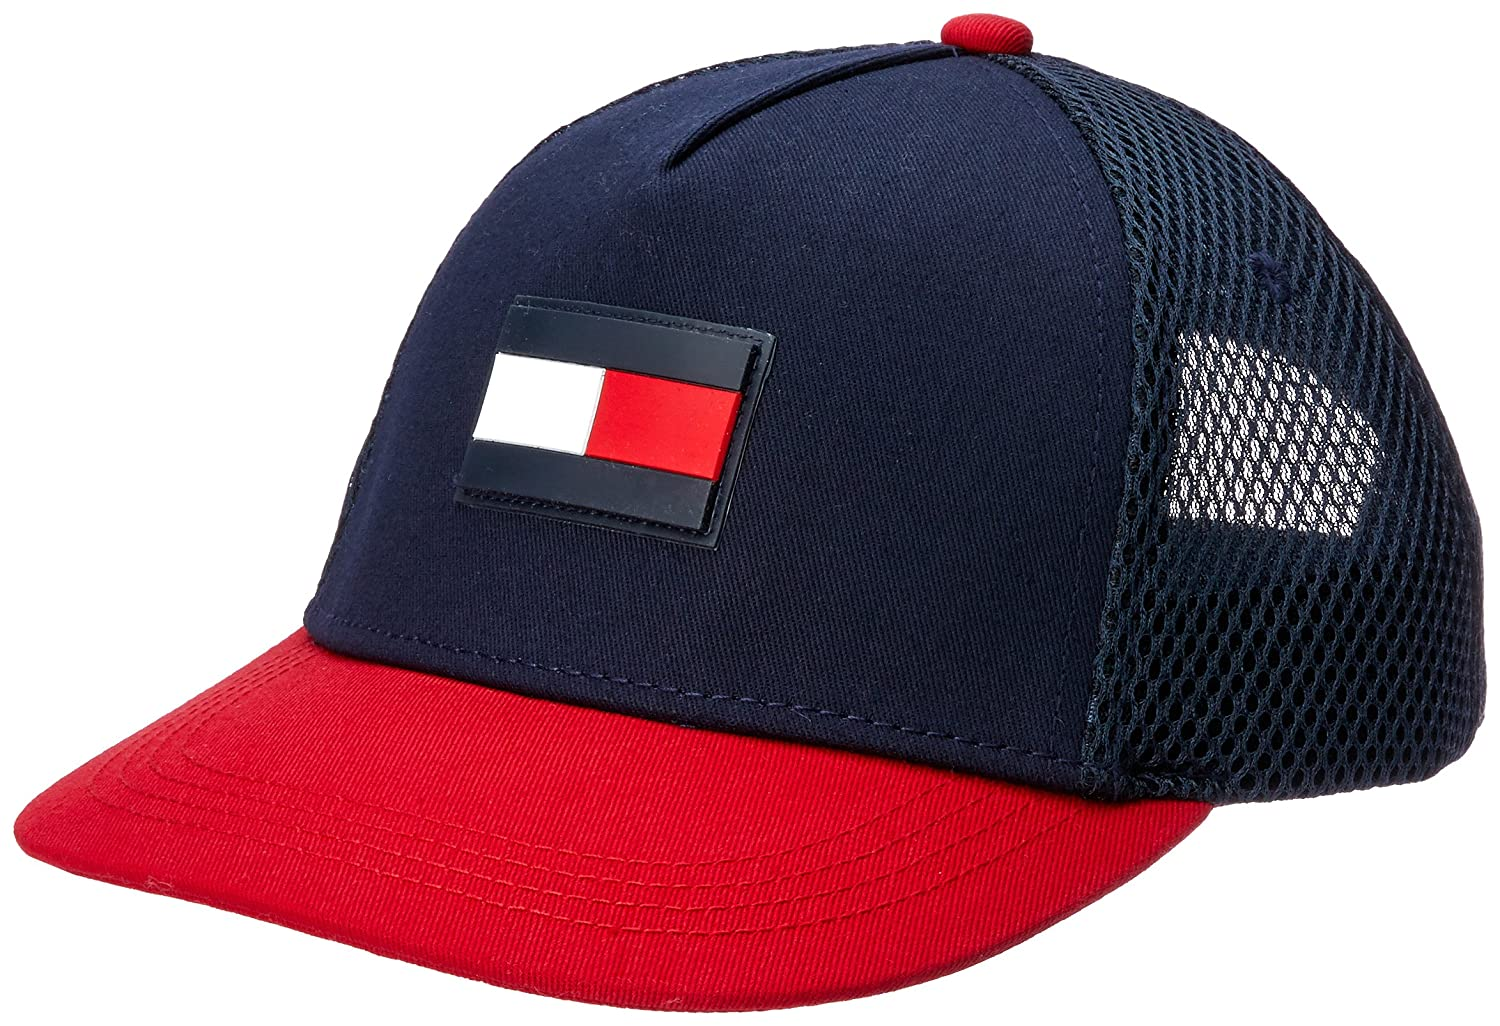 Tommy Hilfiger AM0AM04188 FLAG FLAT CAPPELLO Uomo BLU RED L/XL THA03539